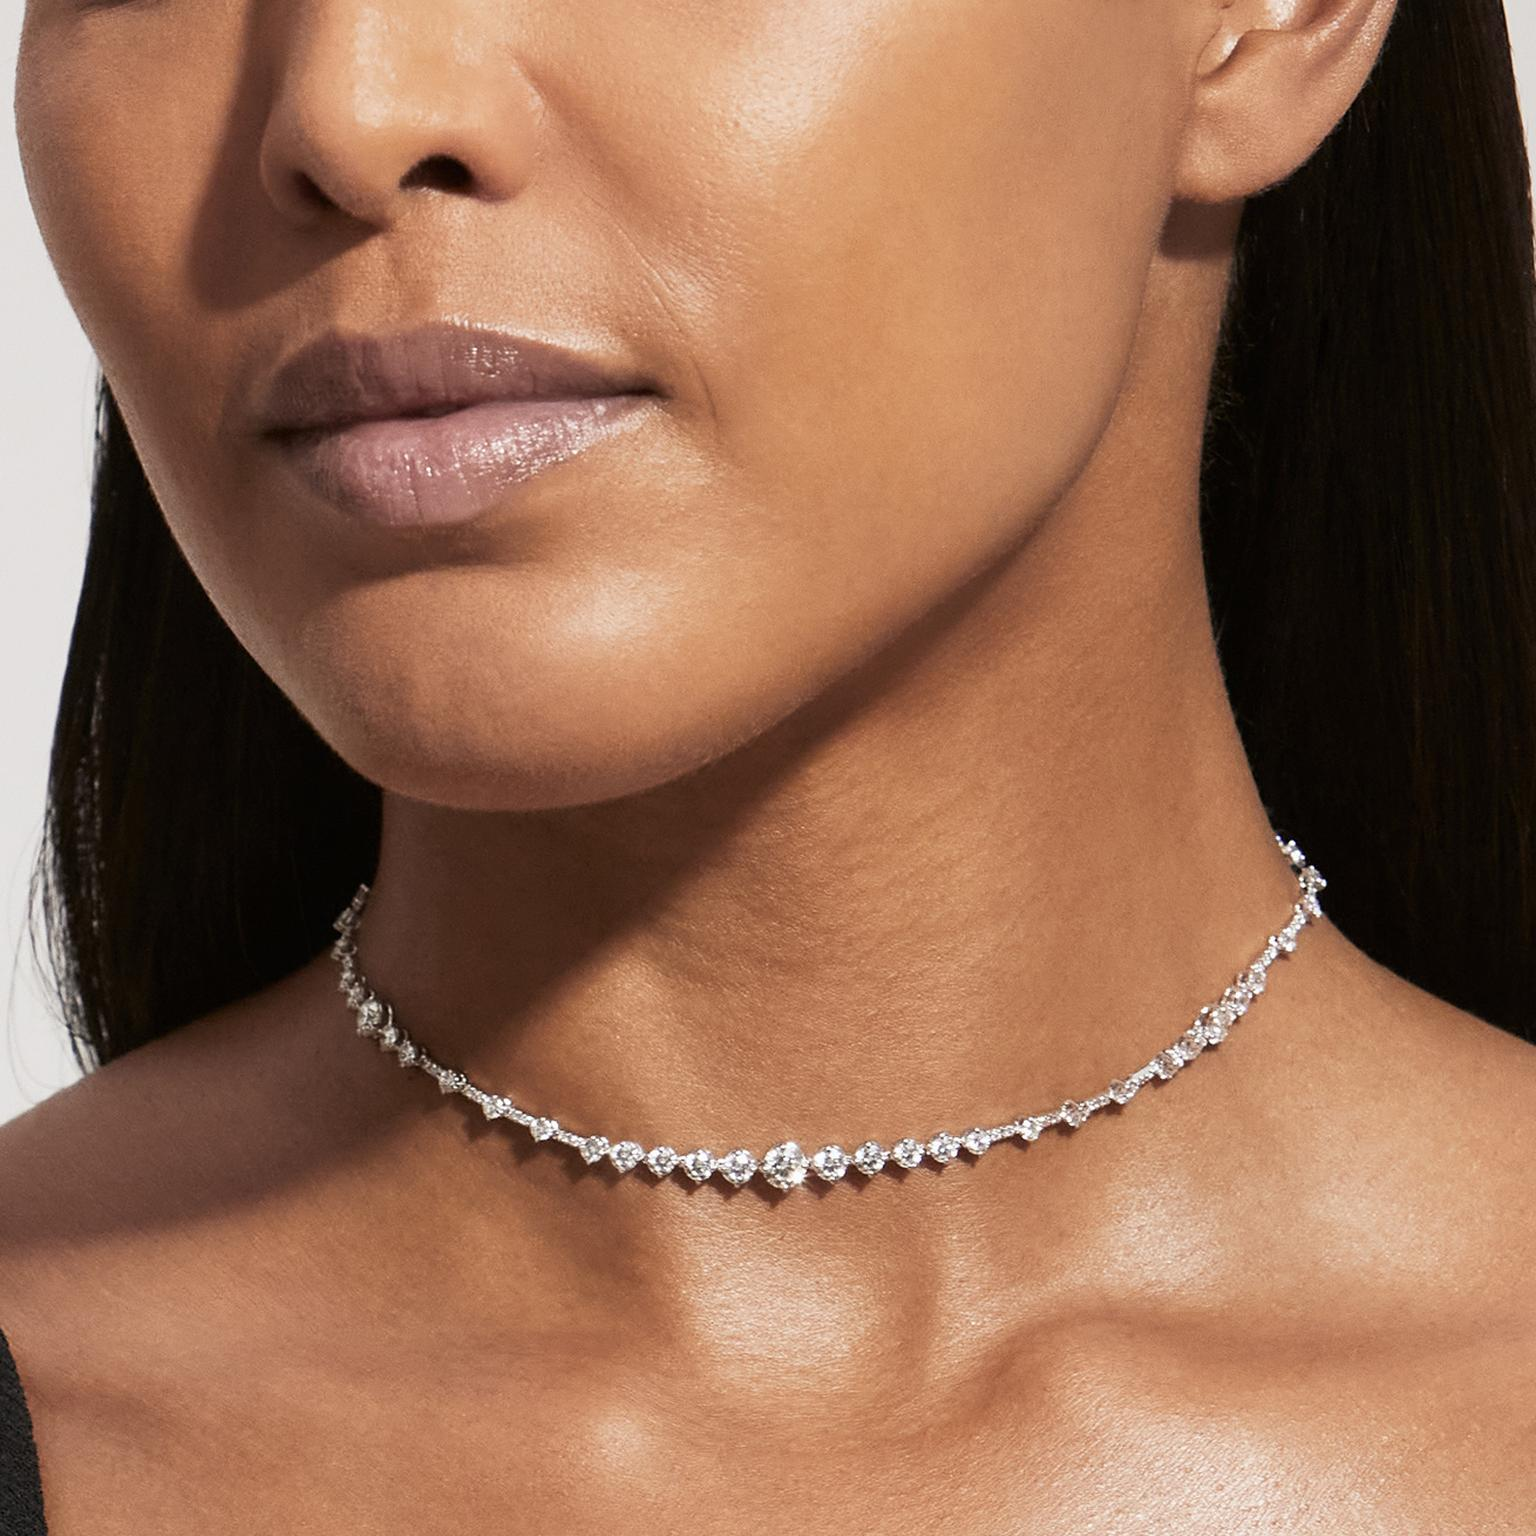 Arpeggia choker by De Beers